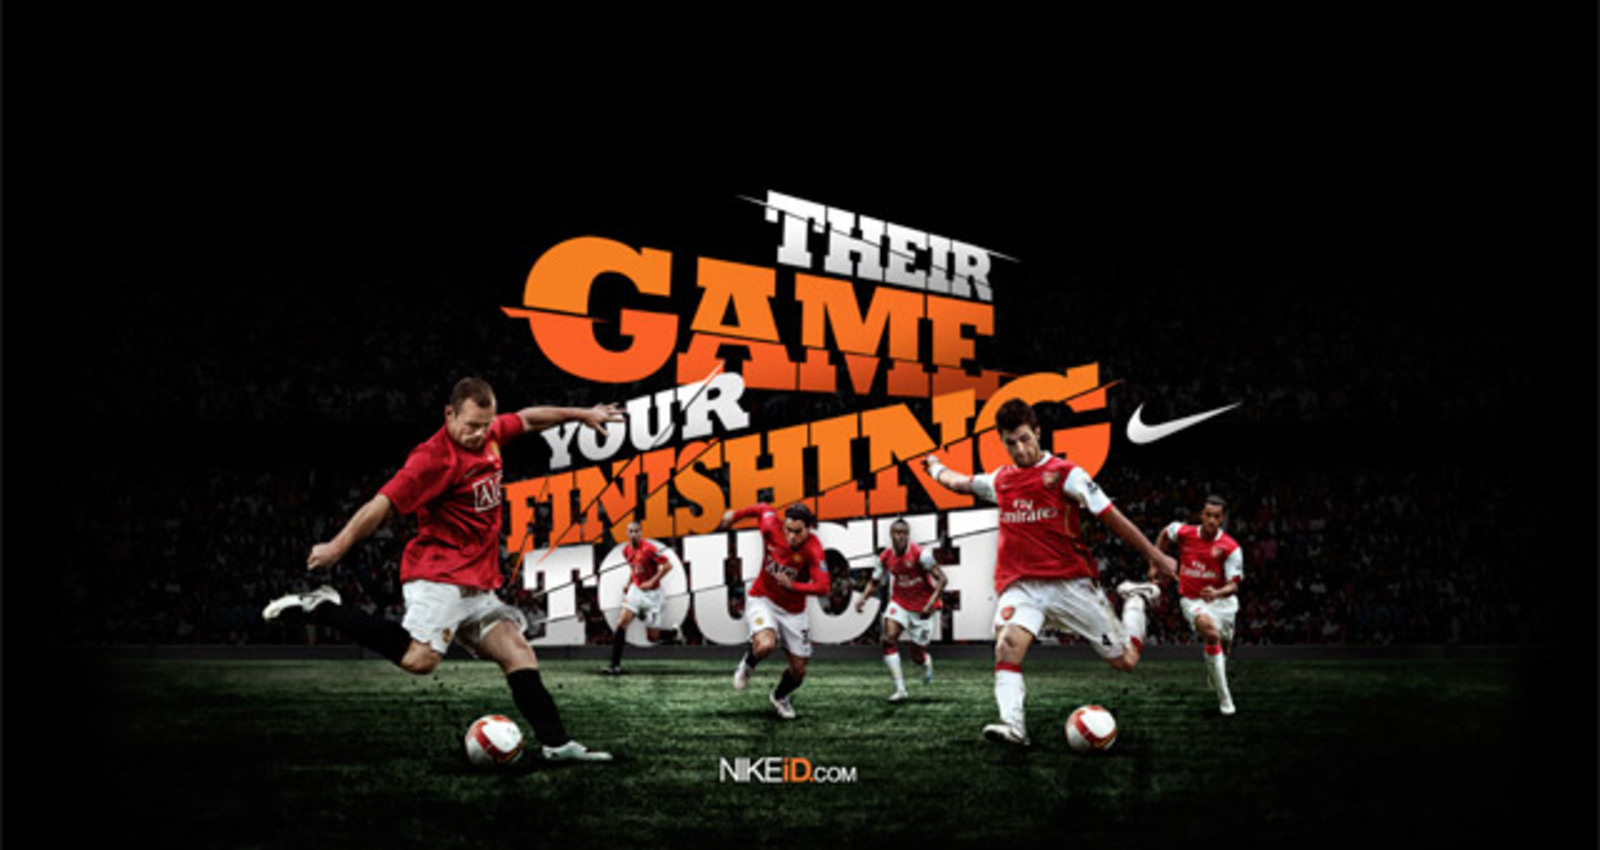 NIKEiD - Their Game, Your Finishing Touch